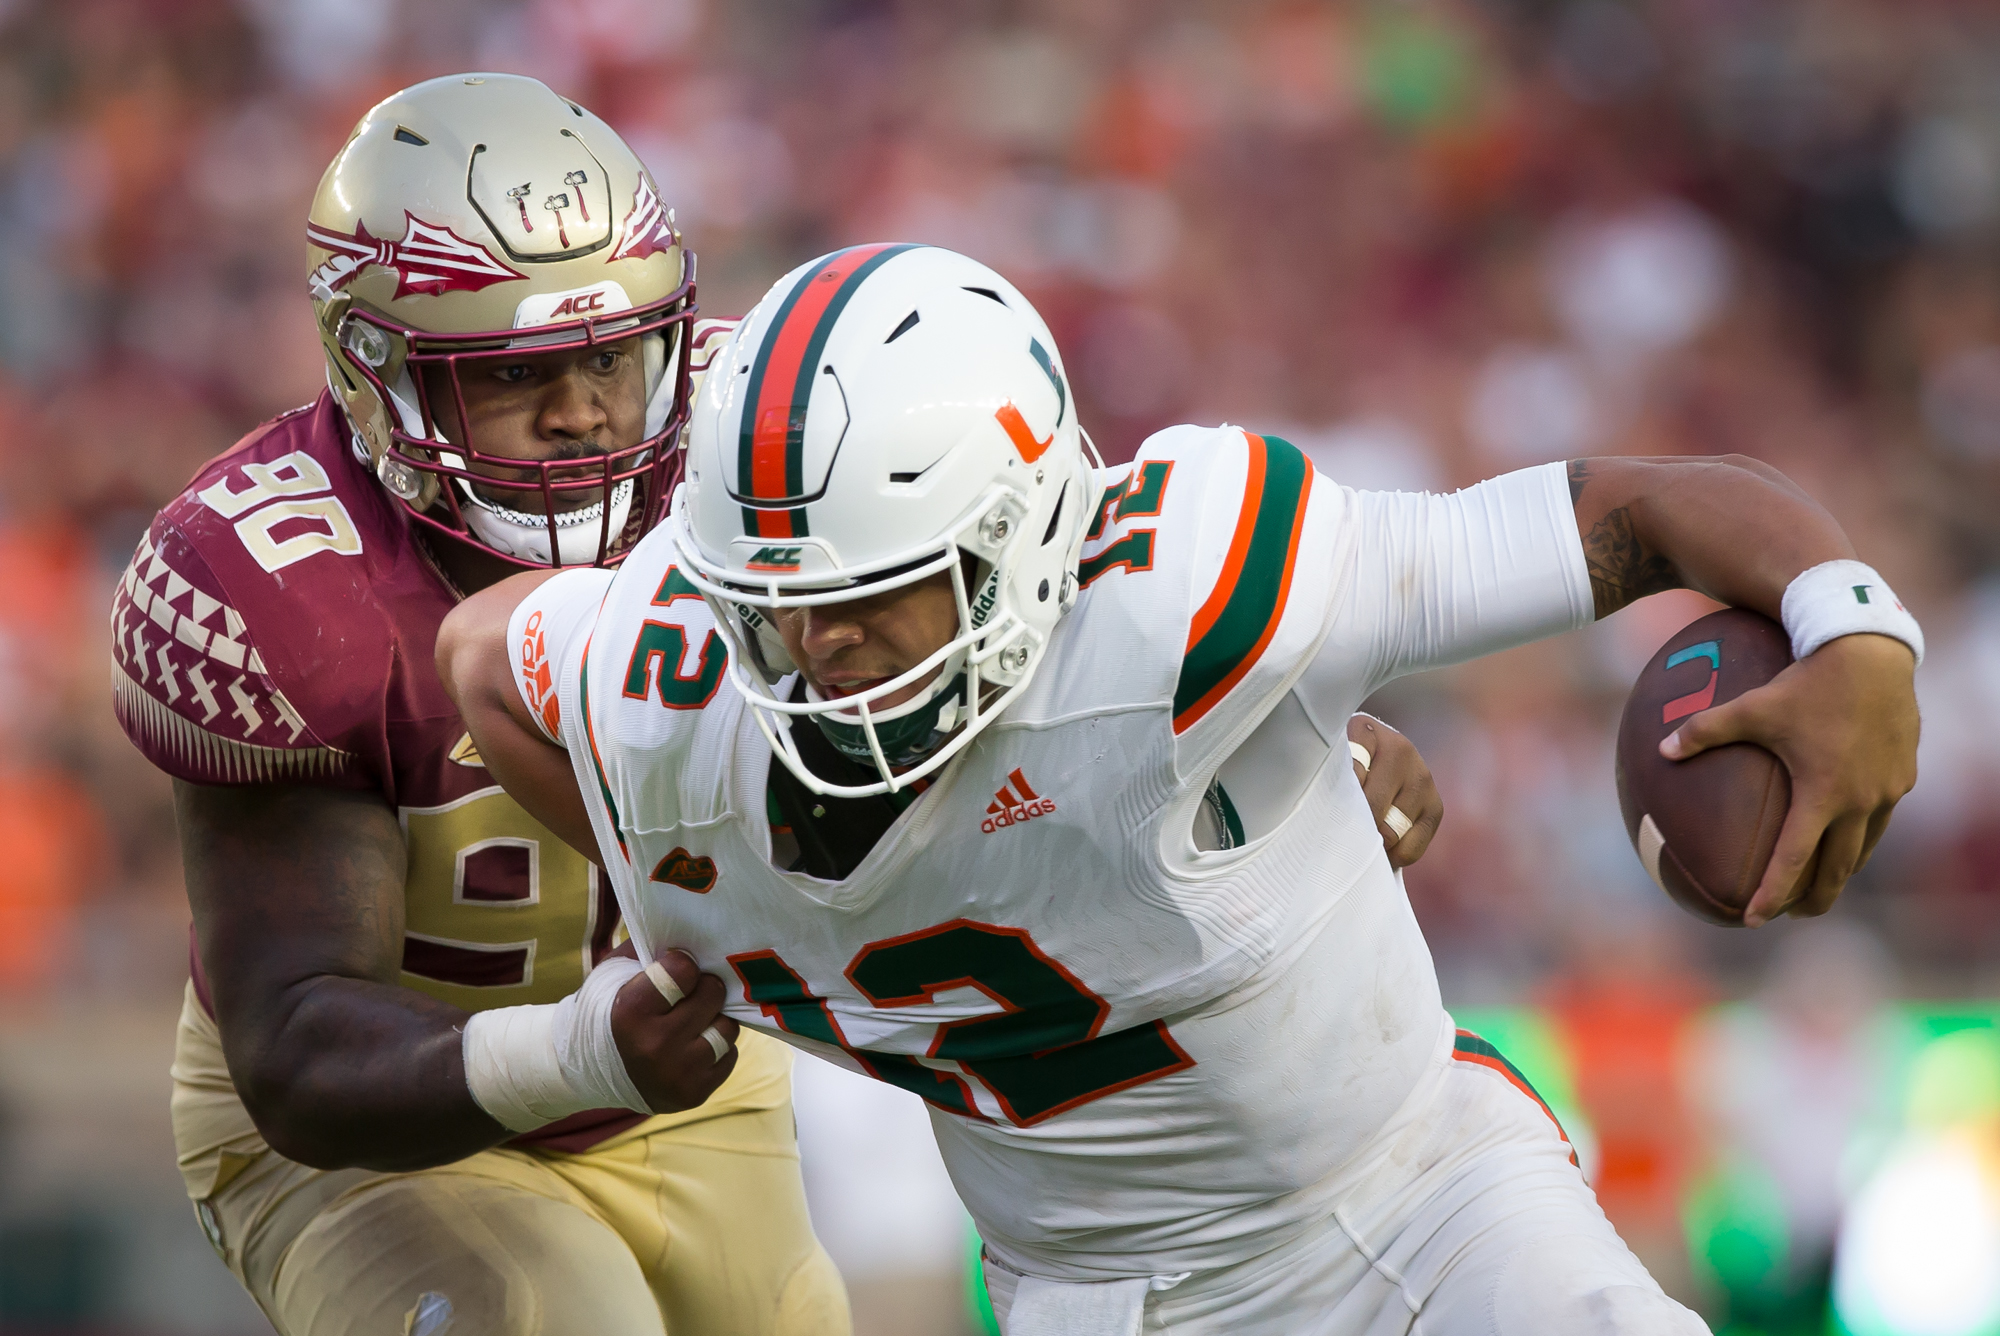 Need Florida State Seminoles Football Tickets TicketCity offers 100 moneyback guarantee uptodate prices amp event information Over 1 million customers served